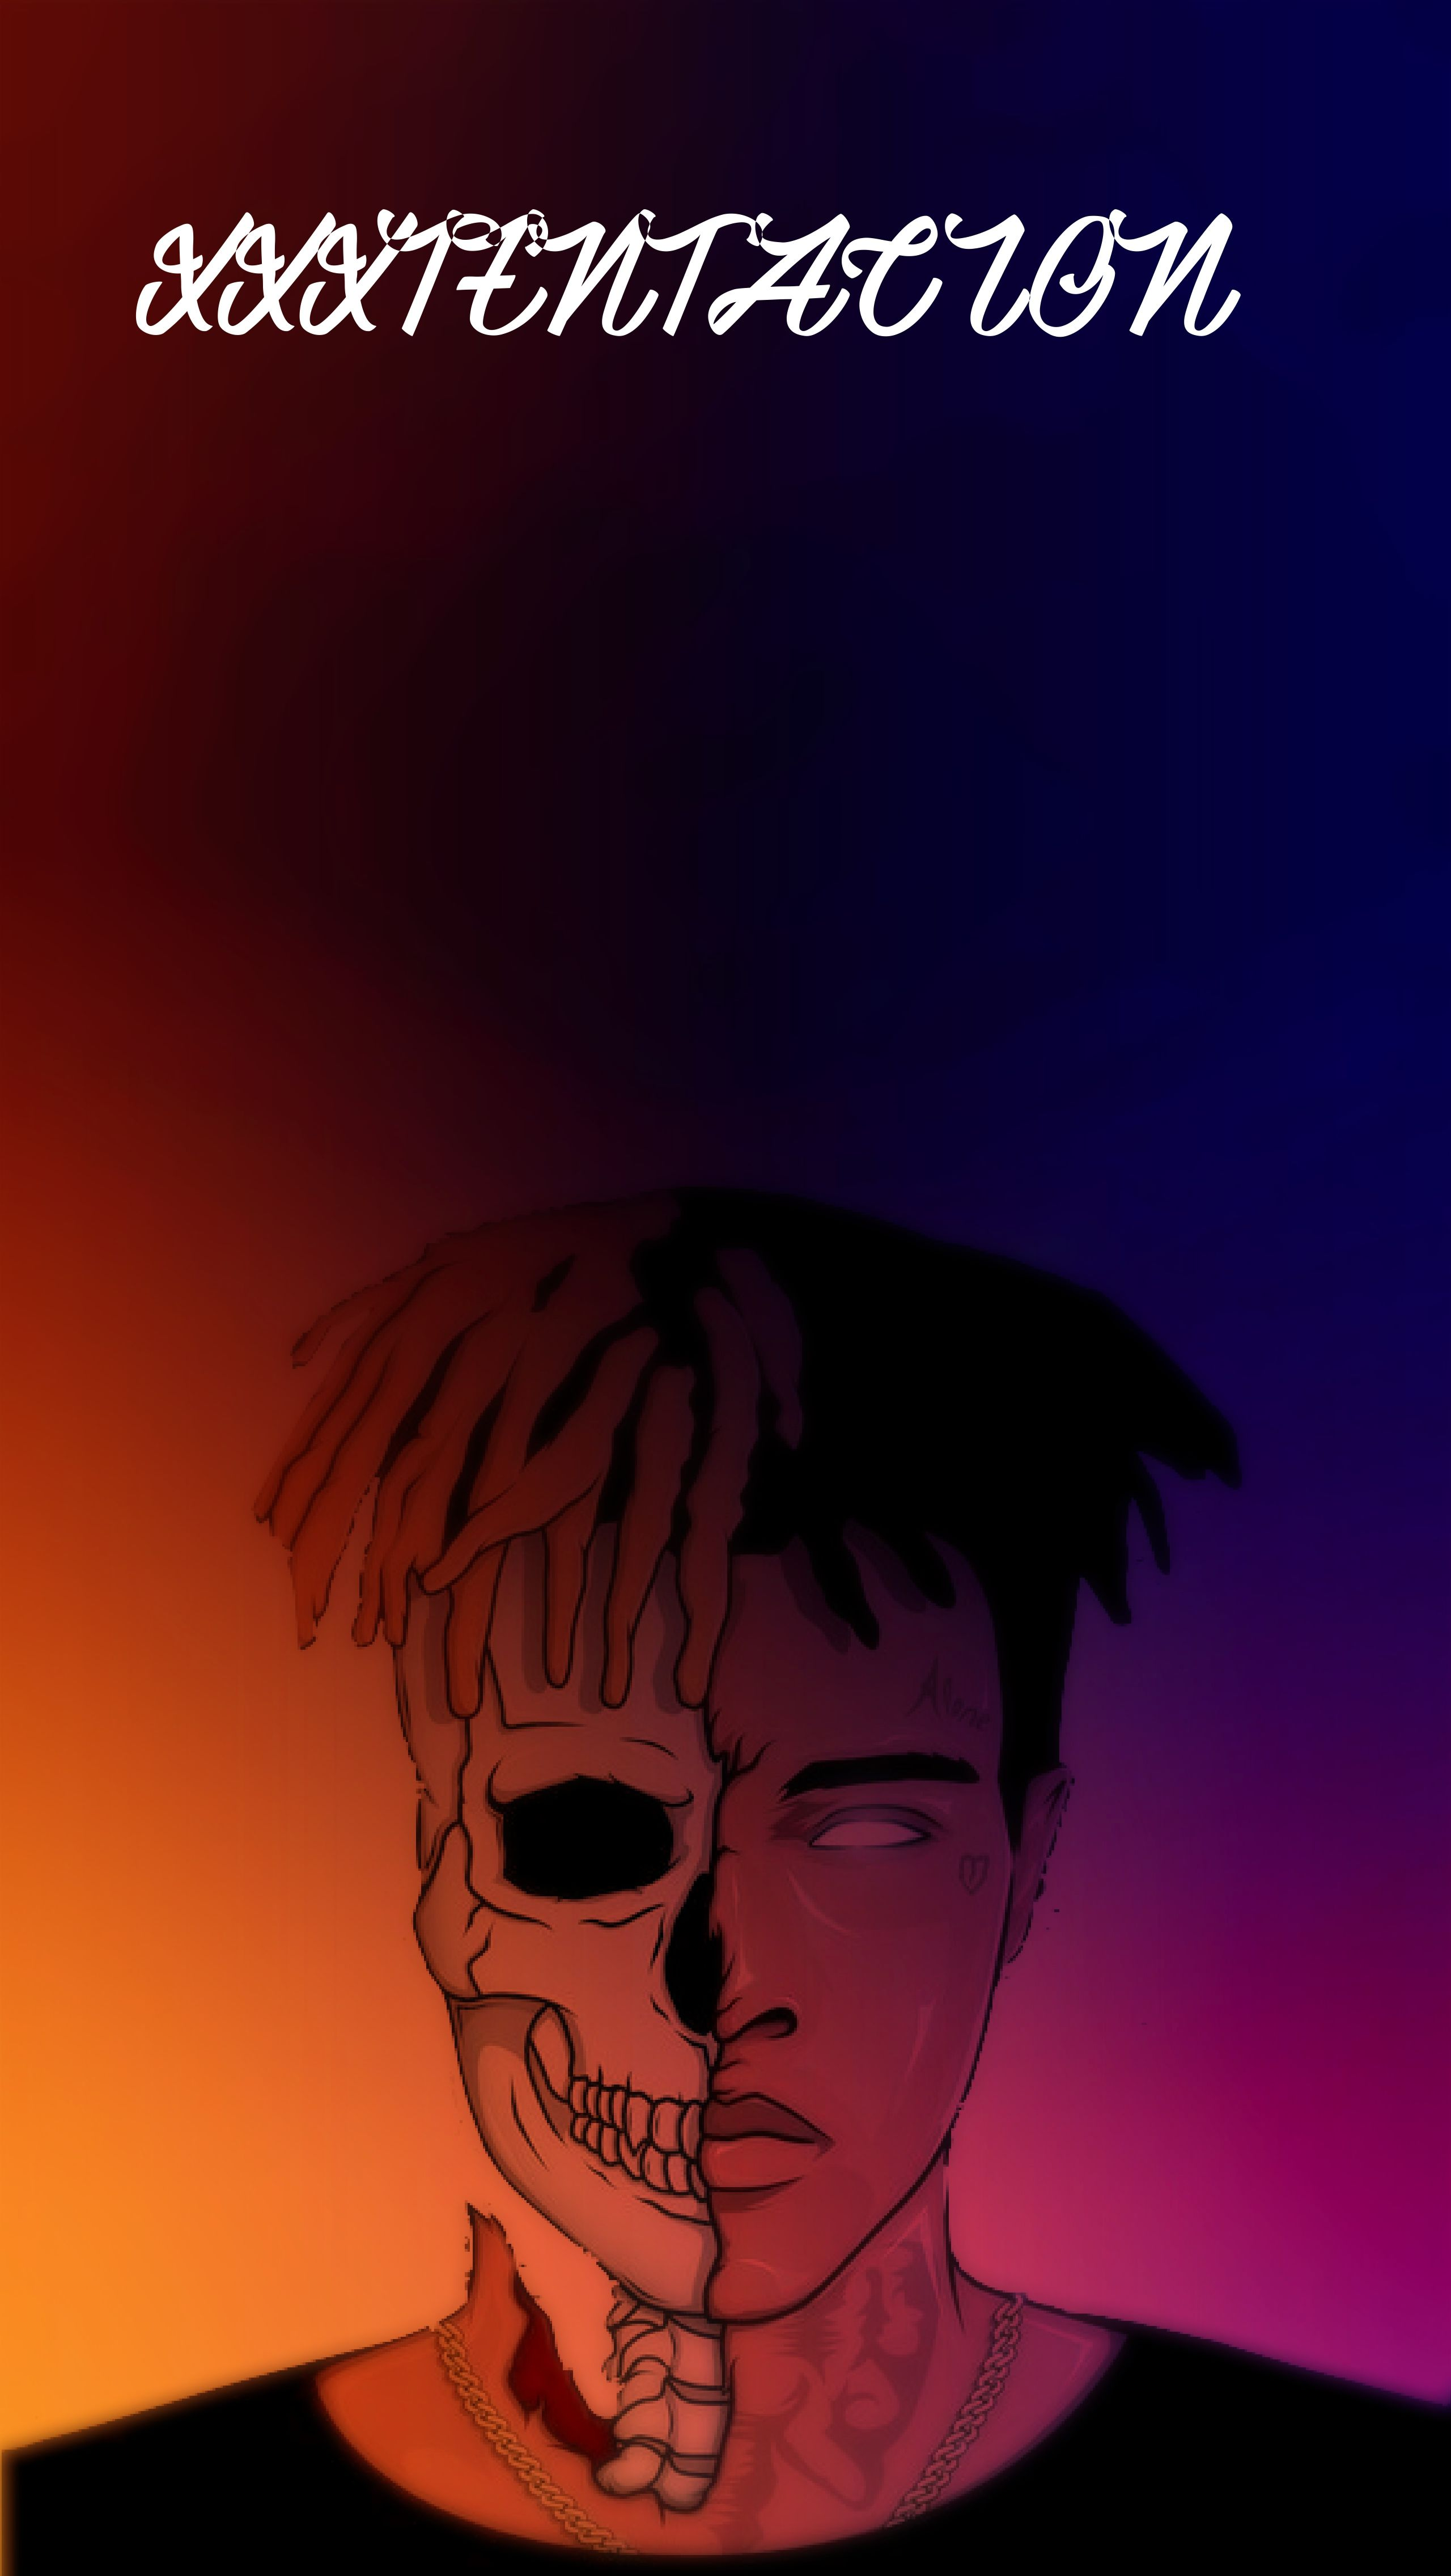 xxxtentacion wallpaper | Song lyrics | Pinterest | Wallpaper, Screen wallpaper and Lock screen ...